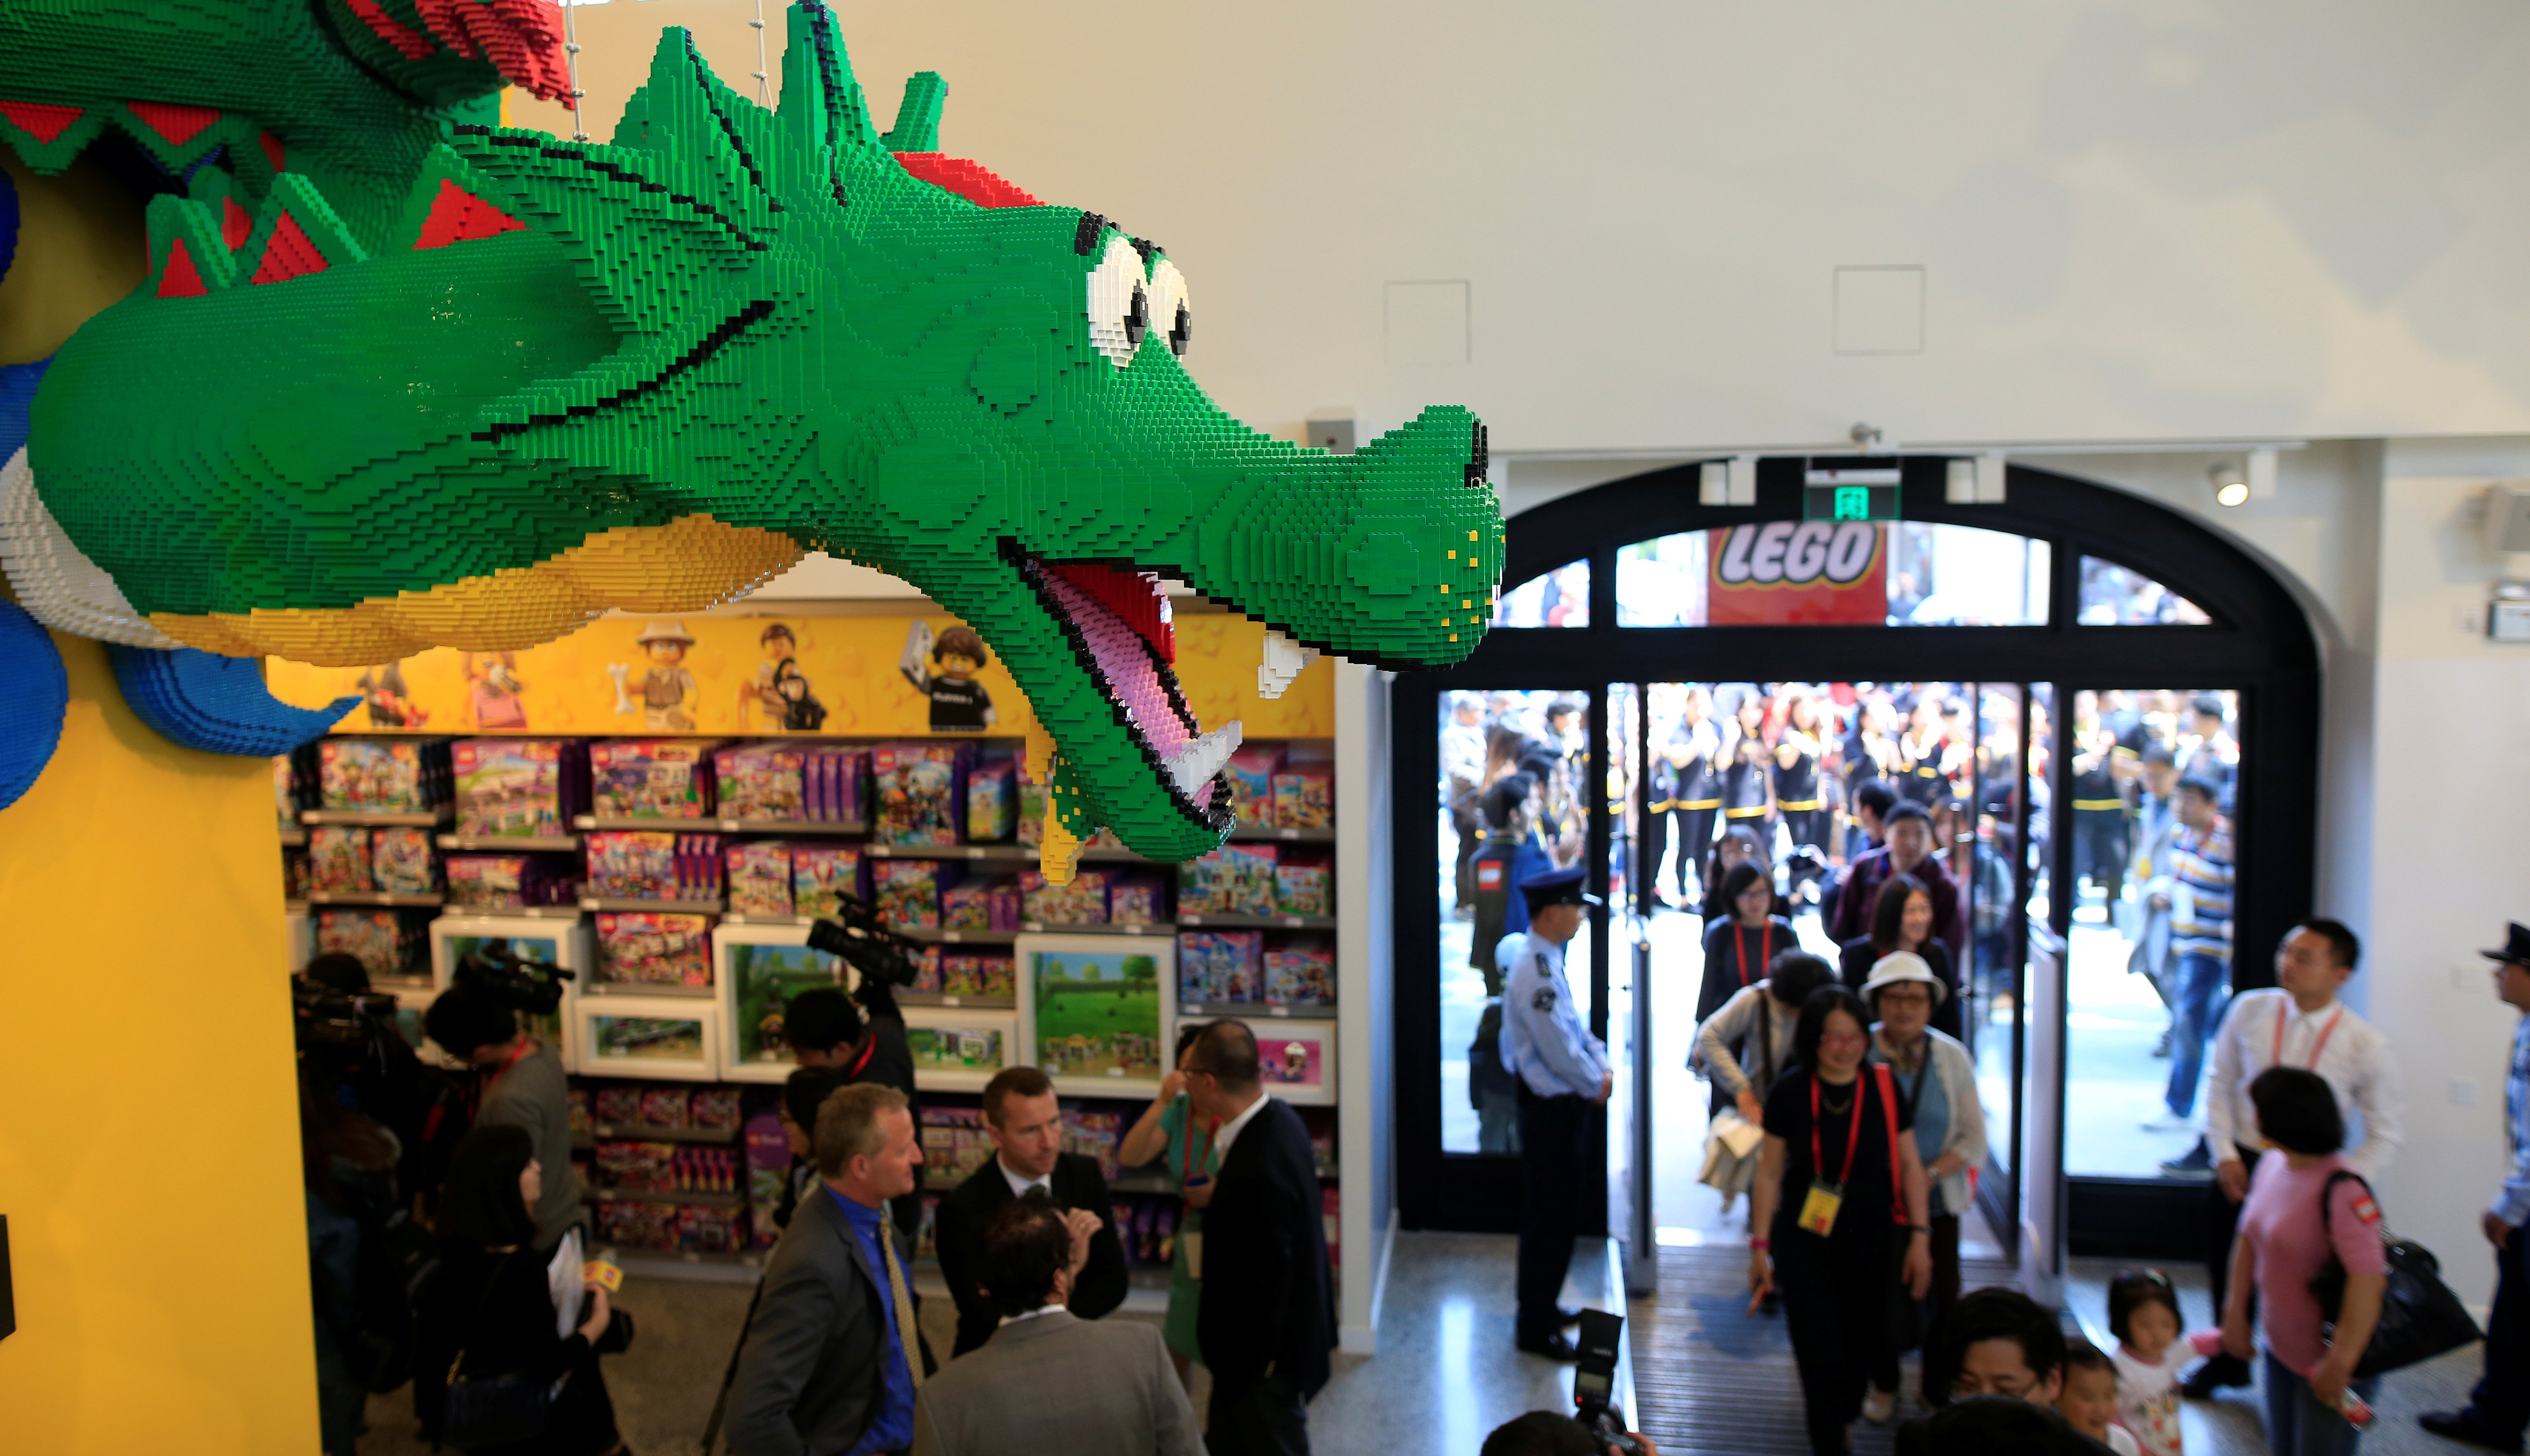 People visit a Lego store during its opening ceremony, the company's largest retail store in the world, near the Shanghai Disney Resort in Shanghai, China, May 11, 2016.  REUTERS/Aly Song - RTX2DSNU